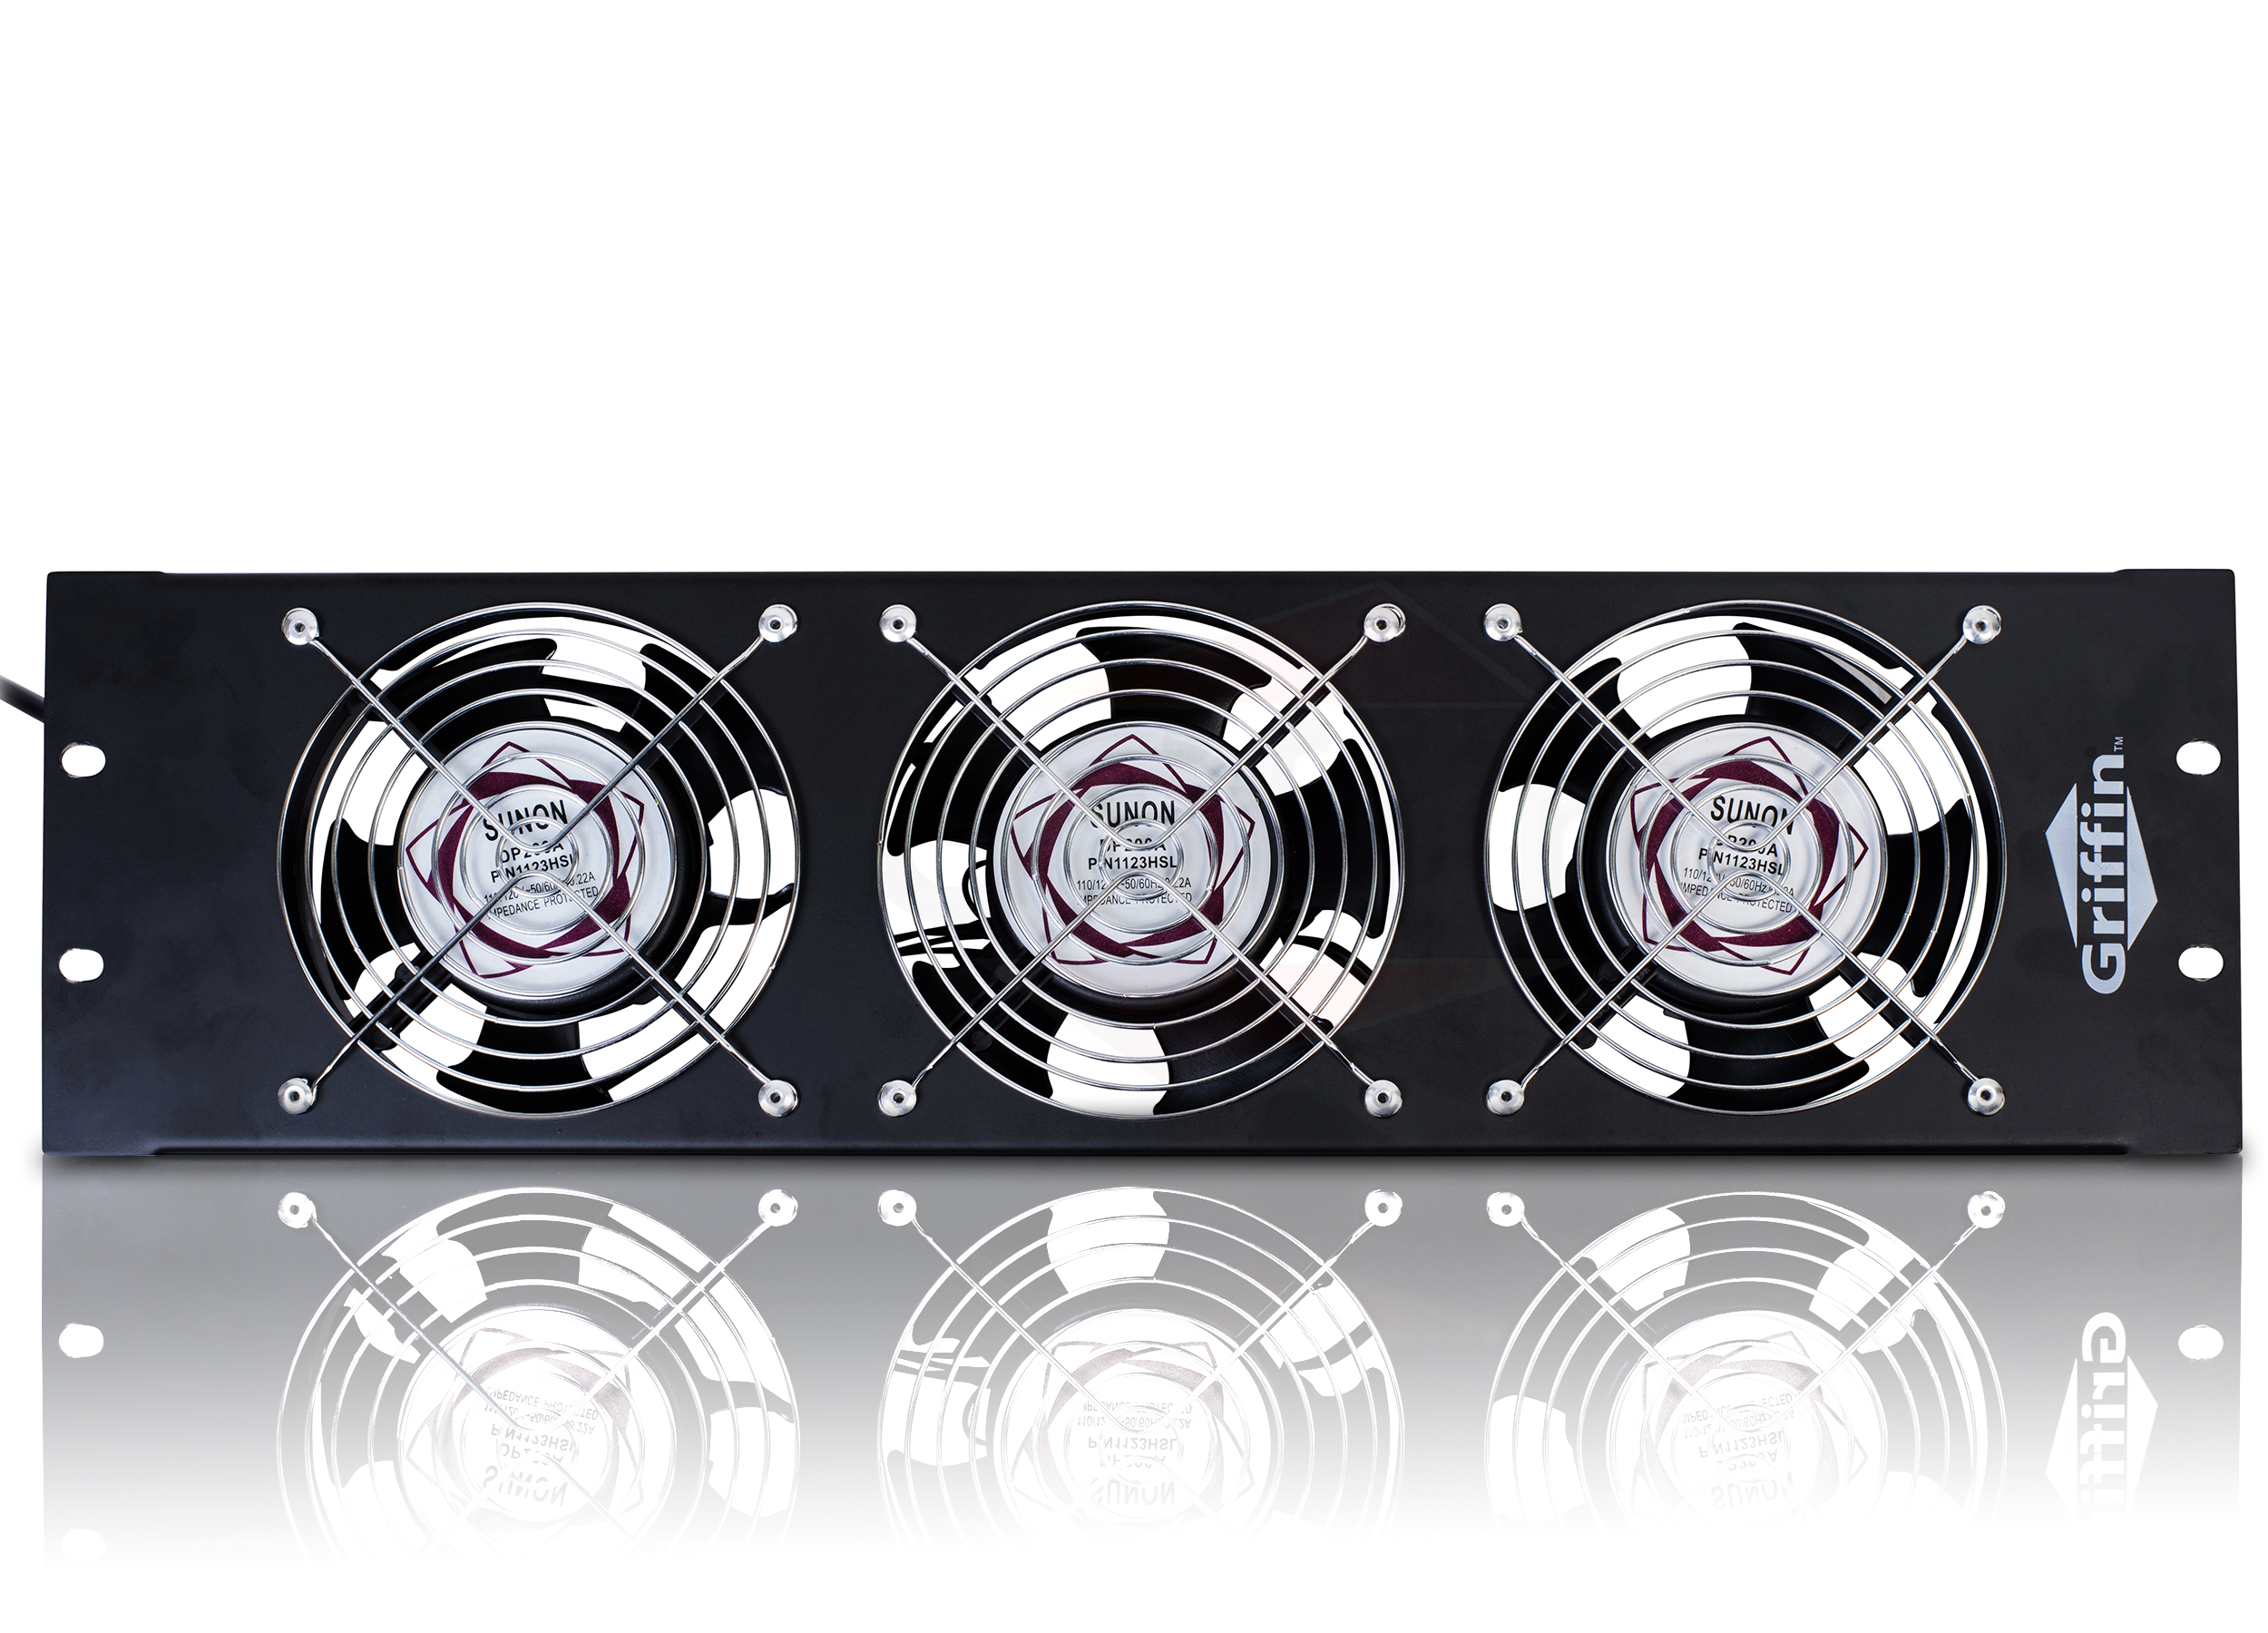 Rackmount Triple Cooling Fans Rack Panel 3U for Studio Equipment Mount  #7D2C2F